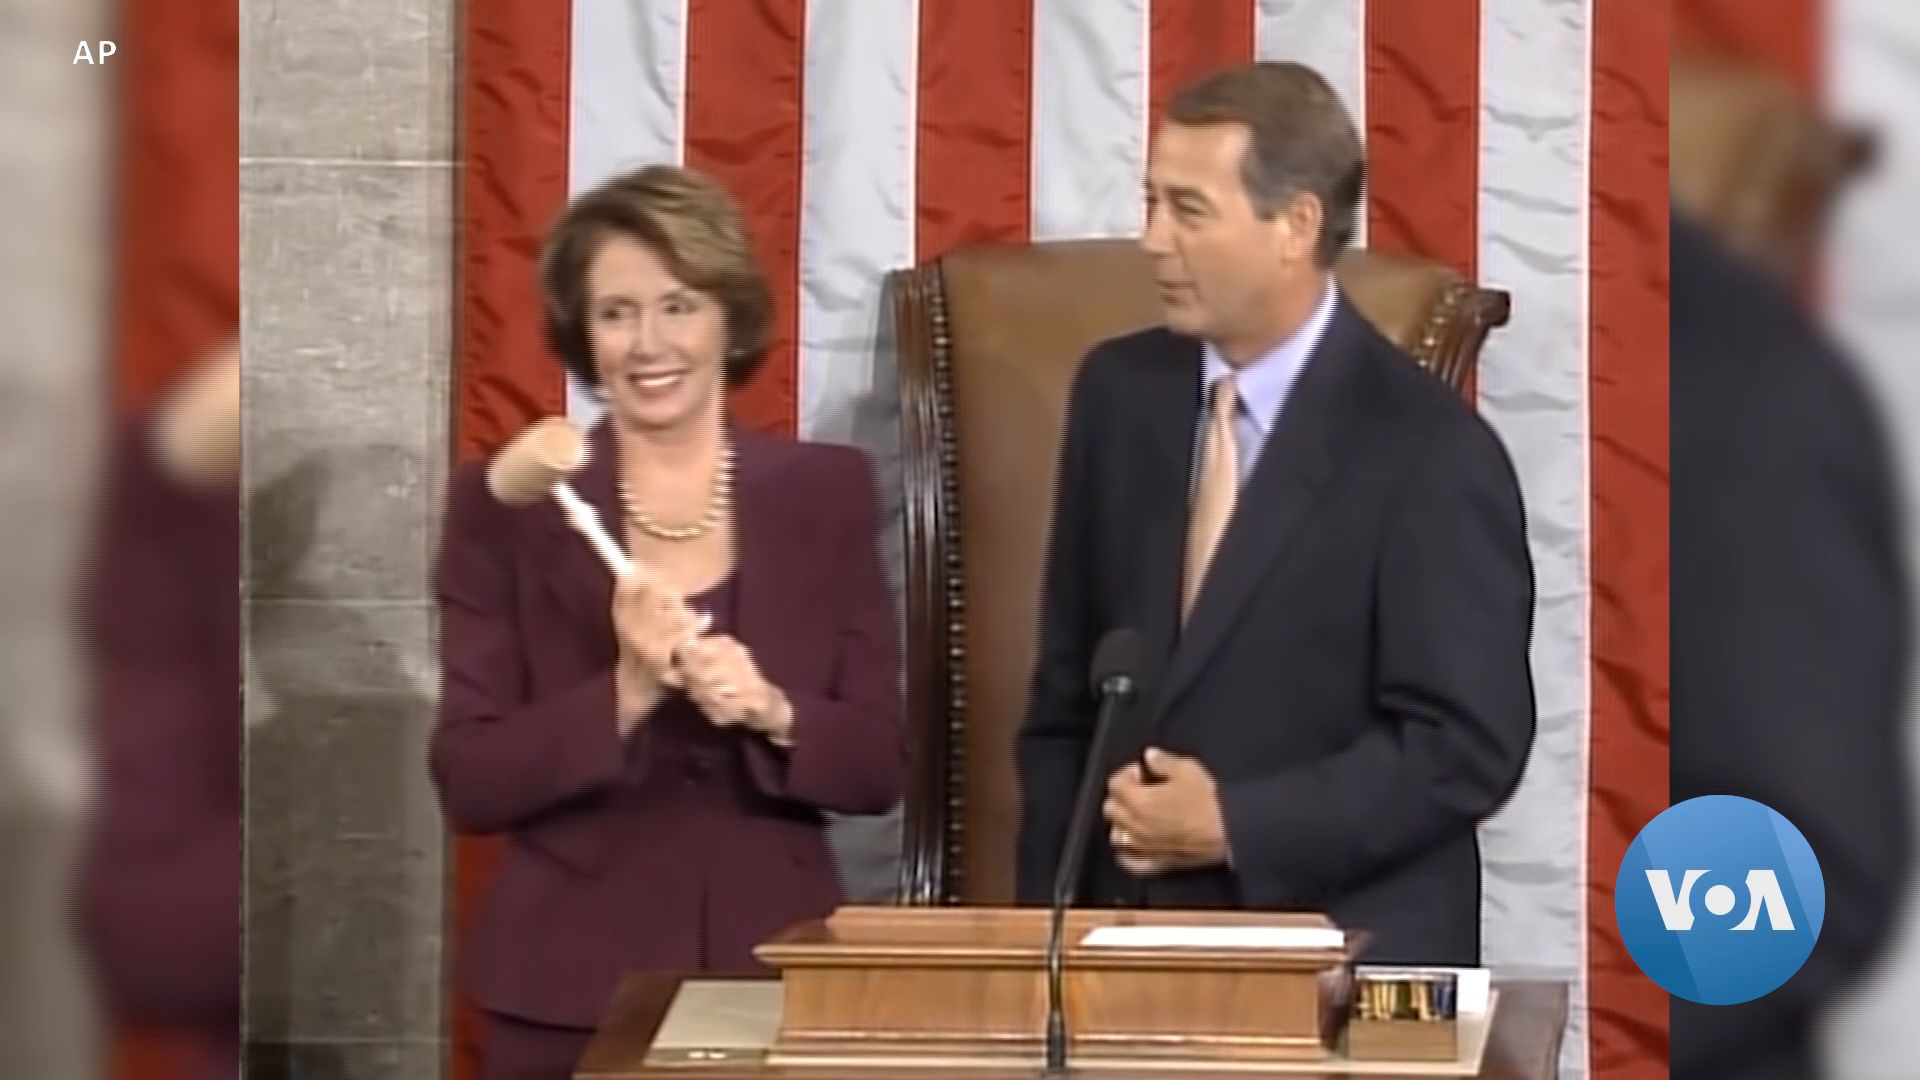 First Female Speaker of the House, Pelosi Knew Politics from Early Age